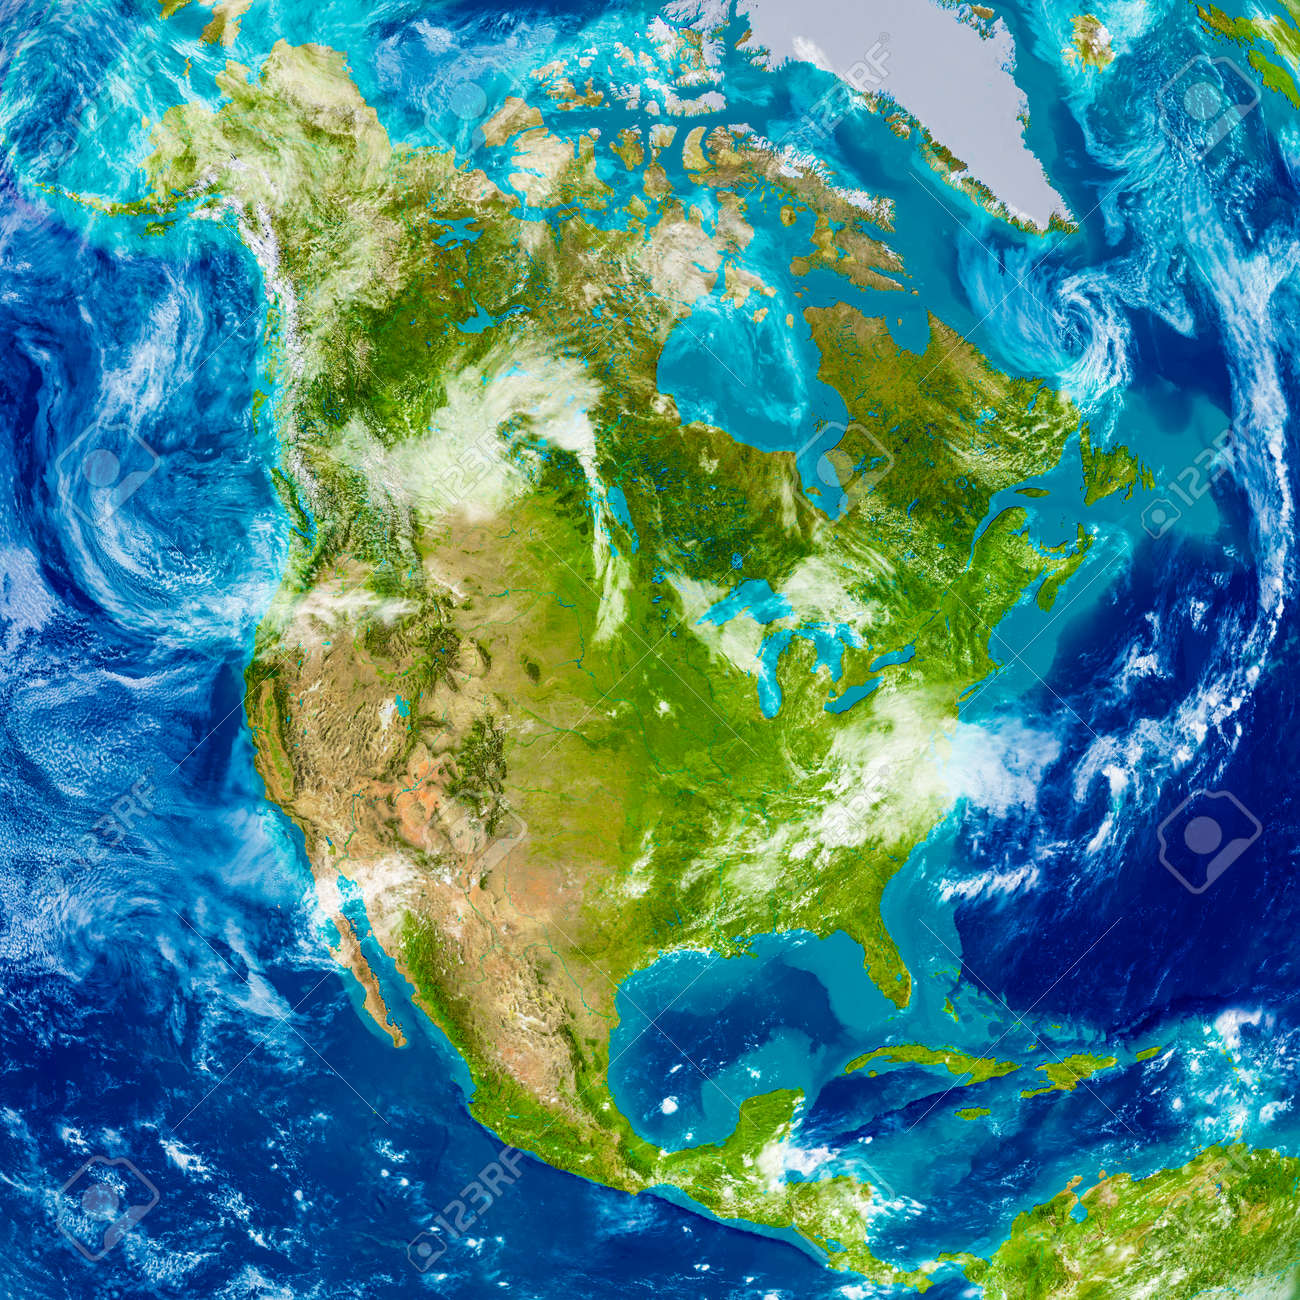 North america on physical world map 3d illustration with detailed illustration north america on physical world map 3d illustration with detailed planet surface gumiabroncs Gallery